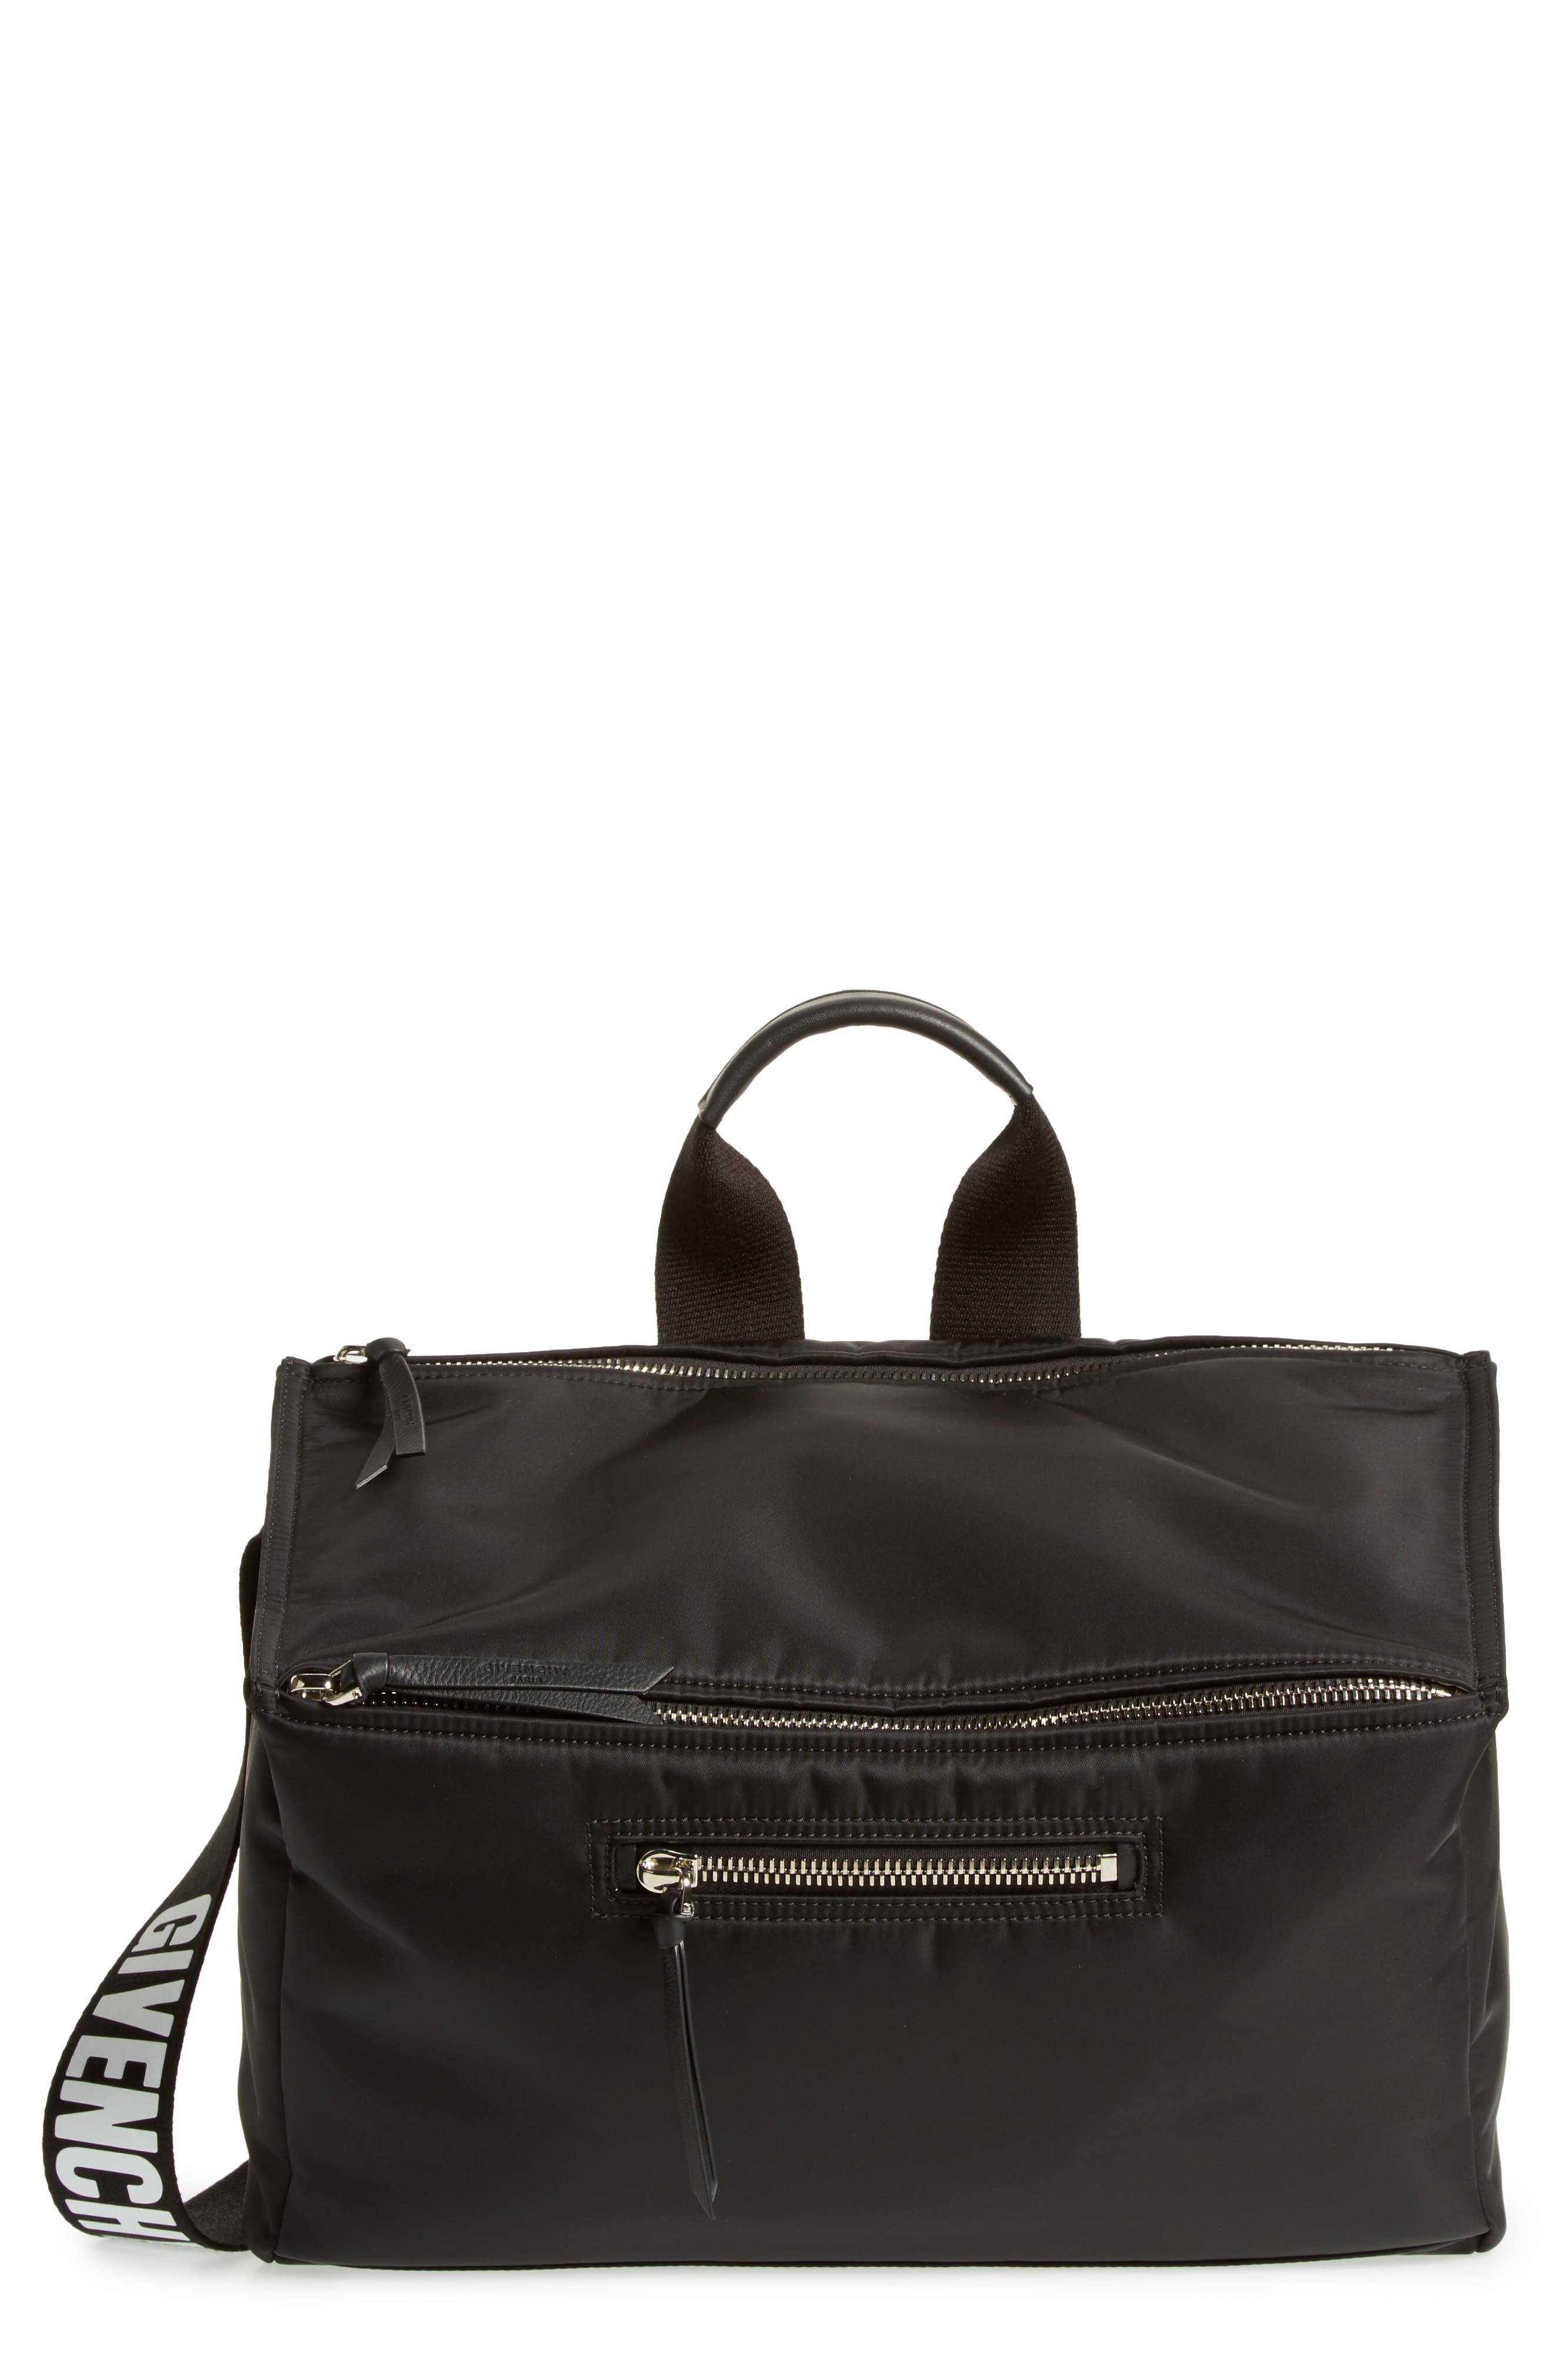 Alternate Image 1 Selected - Givenchy Paris Pandora Shoulder Bag